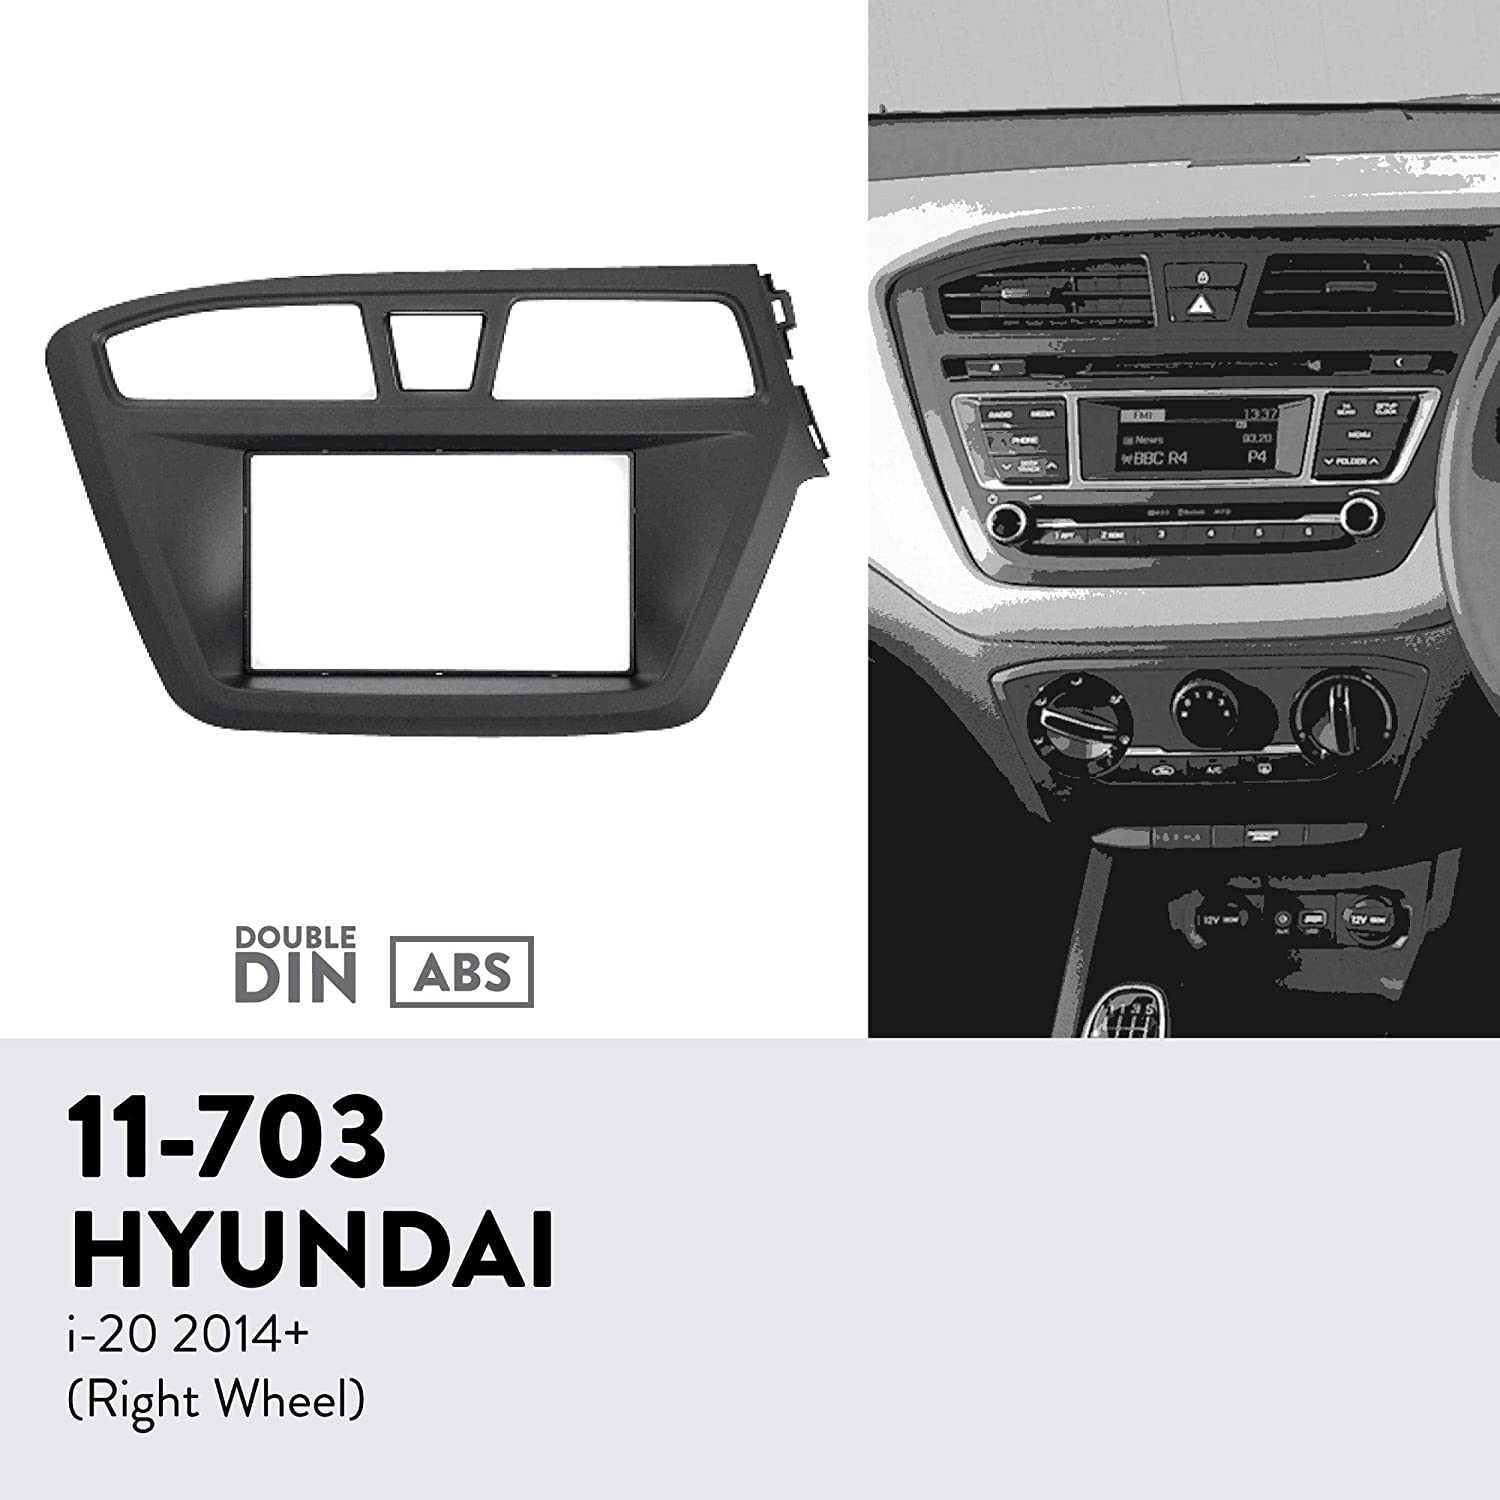 UGAR 11-703 Trim Fascia Car Radio Installation Mounting Kit for Hyundai i-20 2014+